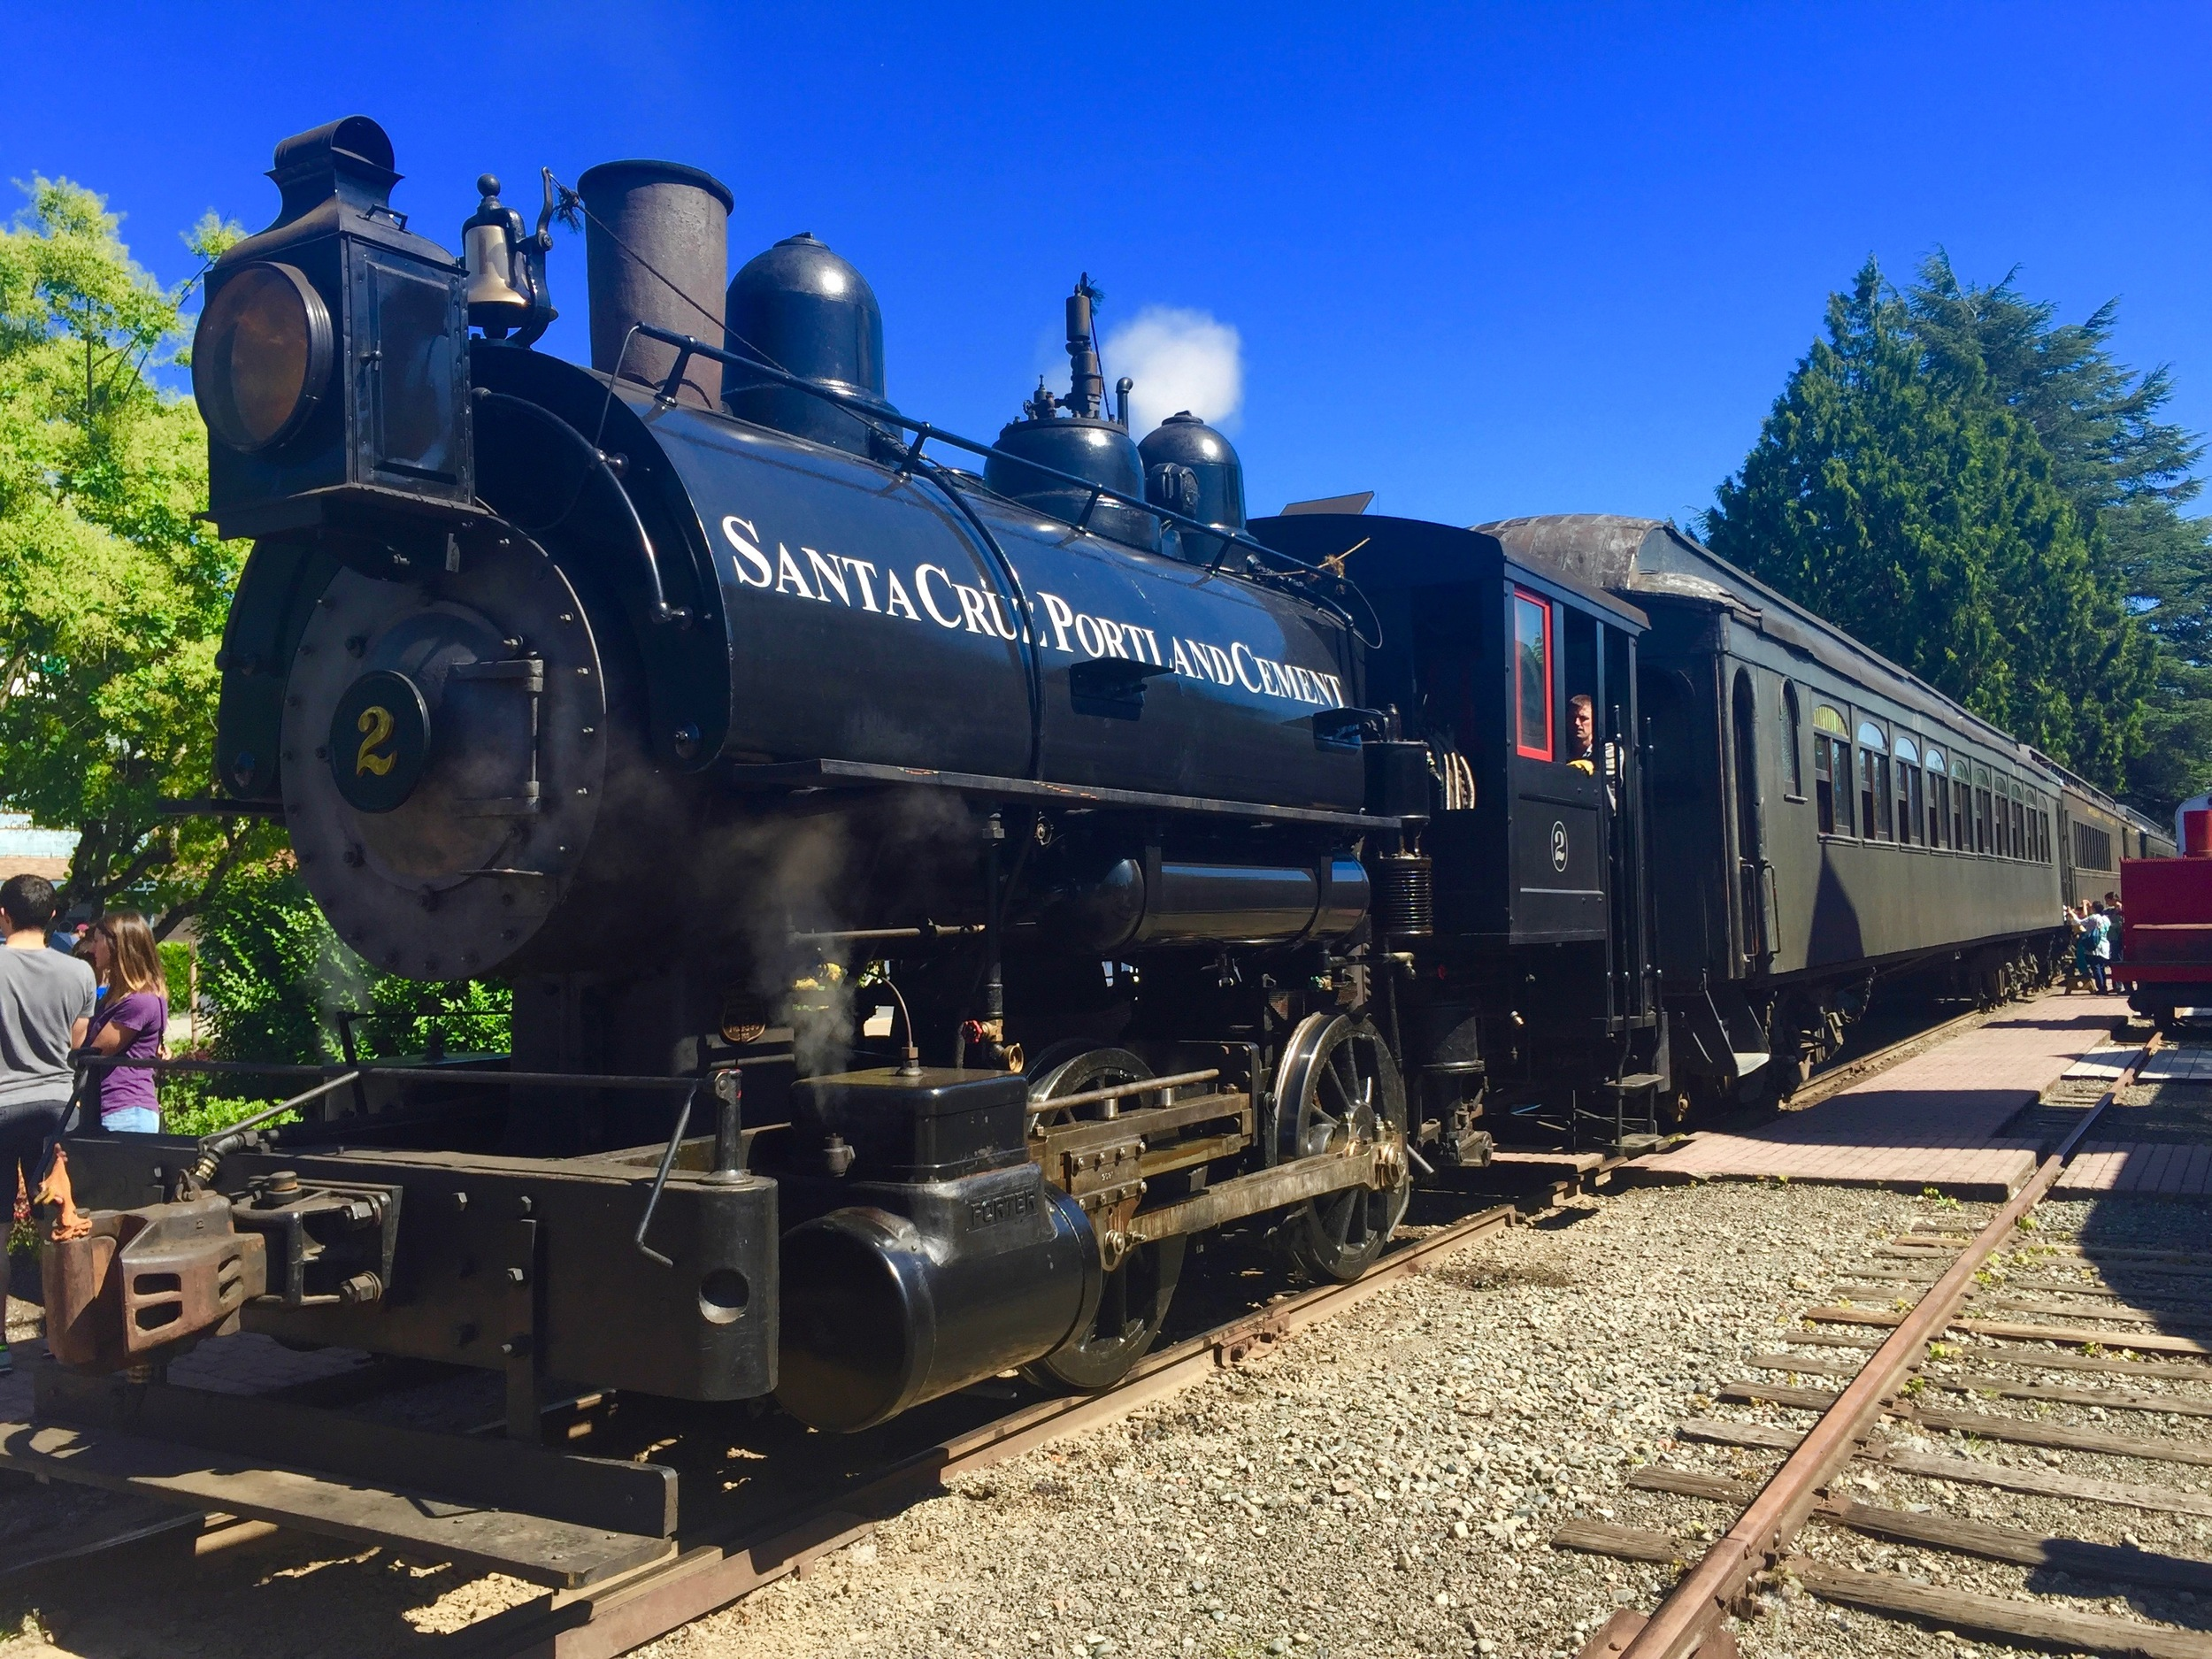 A ride on the antique steam engine is a treat for all ages.